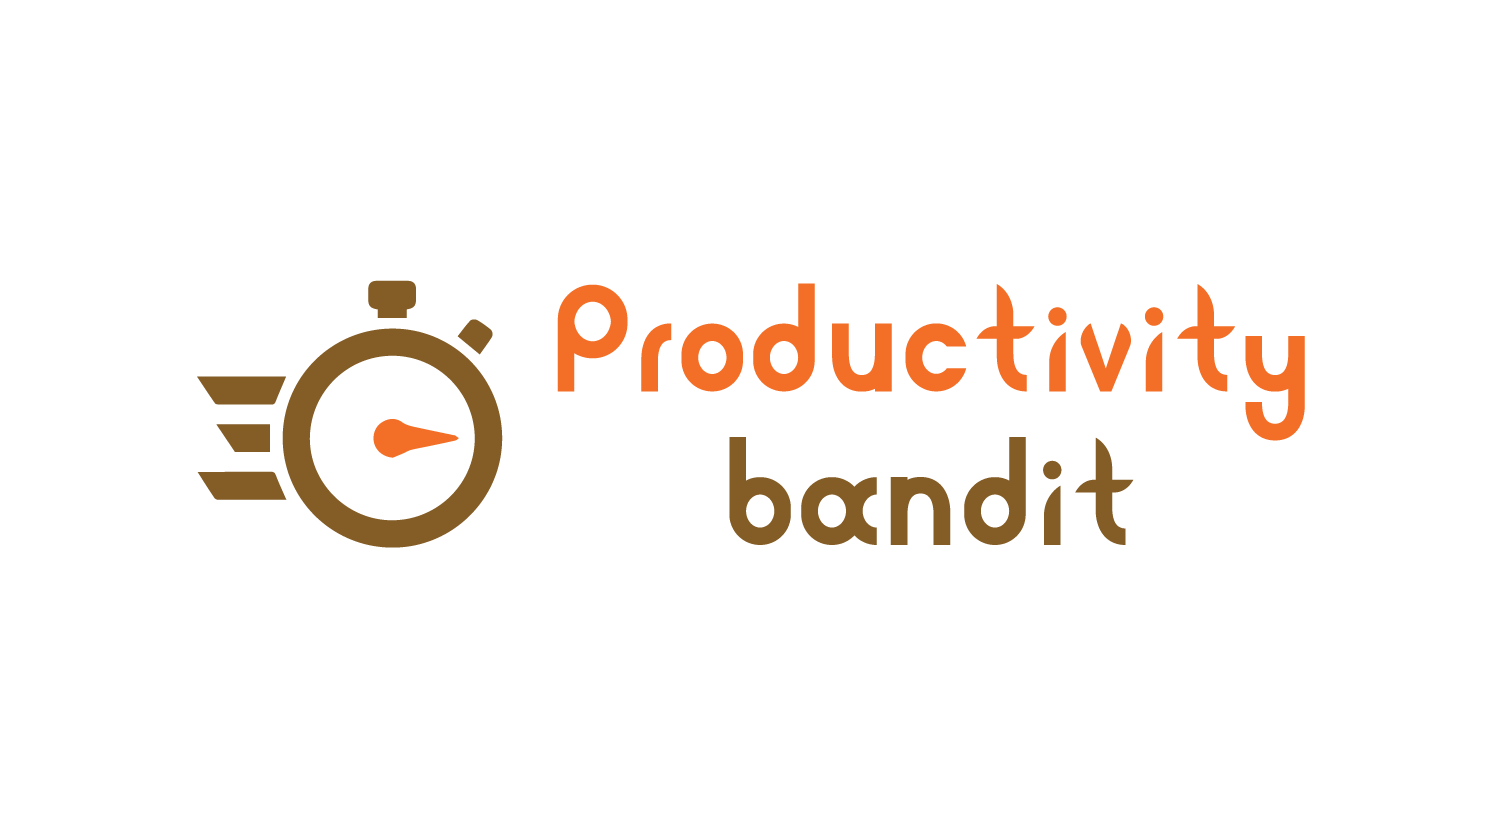 Productivity Bandit